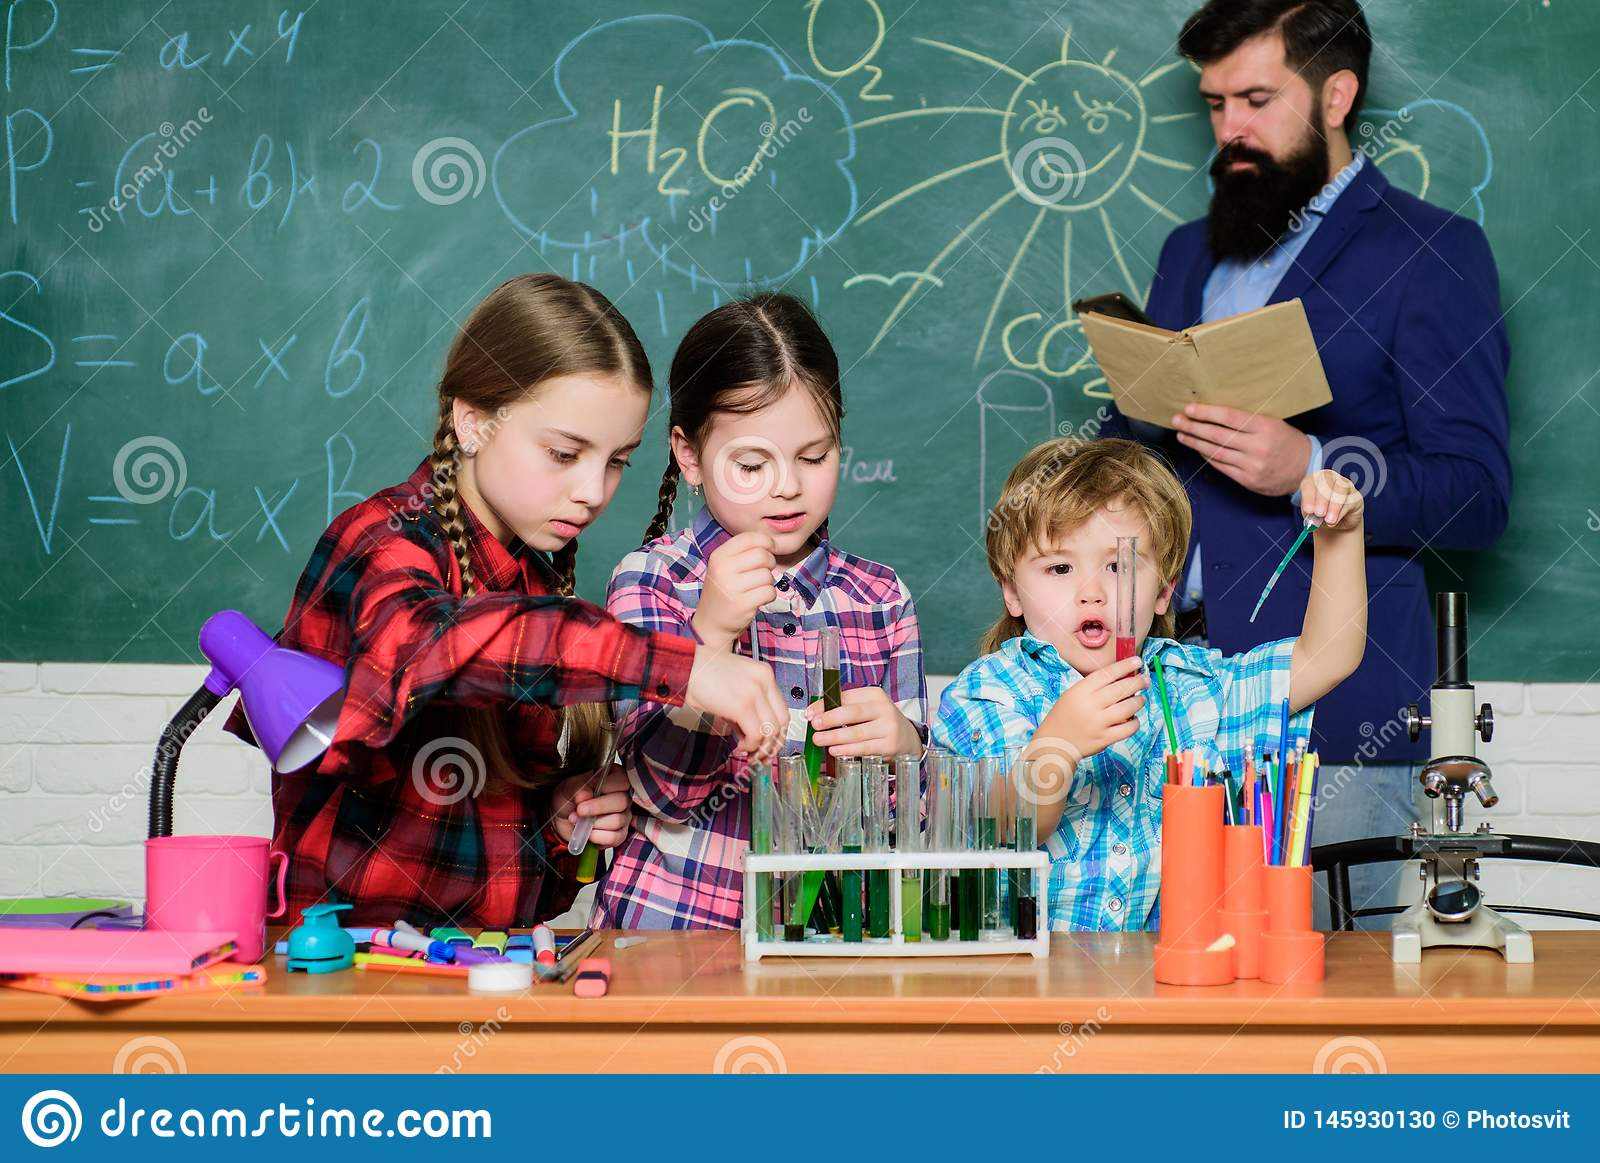 Chemistry classes. Group interaction and communication. Promote scientific interests. Practical knowledge. Teaching kids